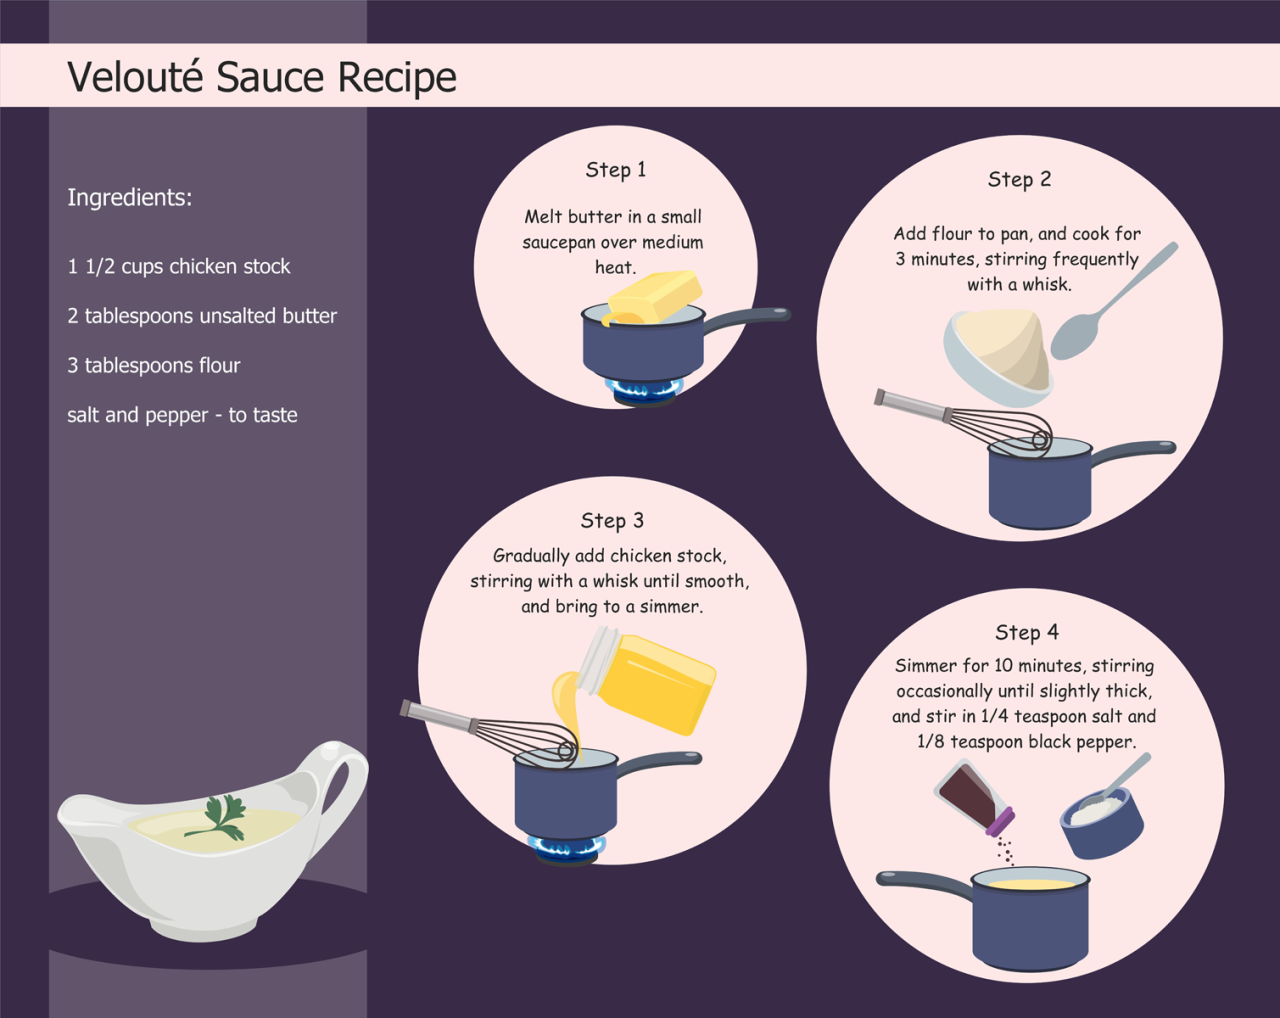 Bexample 5 Veloute Sauce Recipe Bbr Br This Diagram Was Example Created Using Conceptdraw Pro Diagramming And Vector In The Cookware Bakeware Breakfast Libraries From